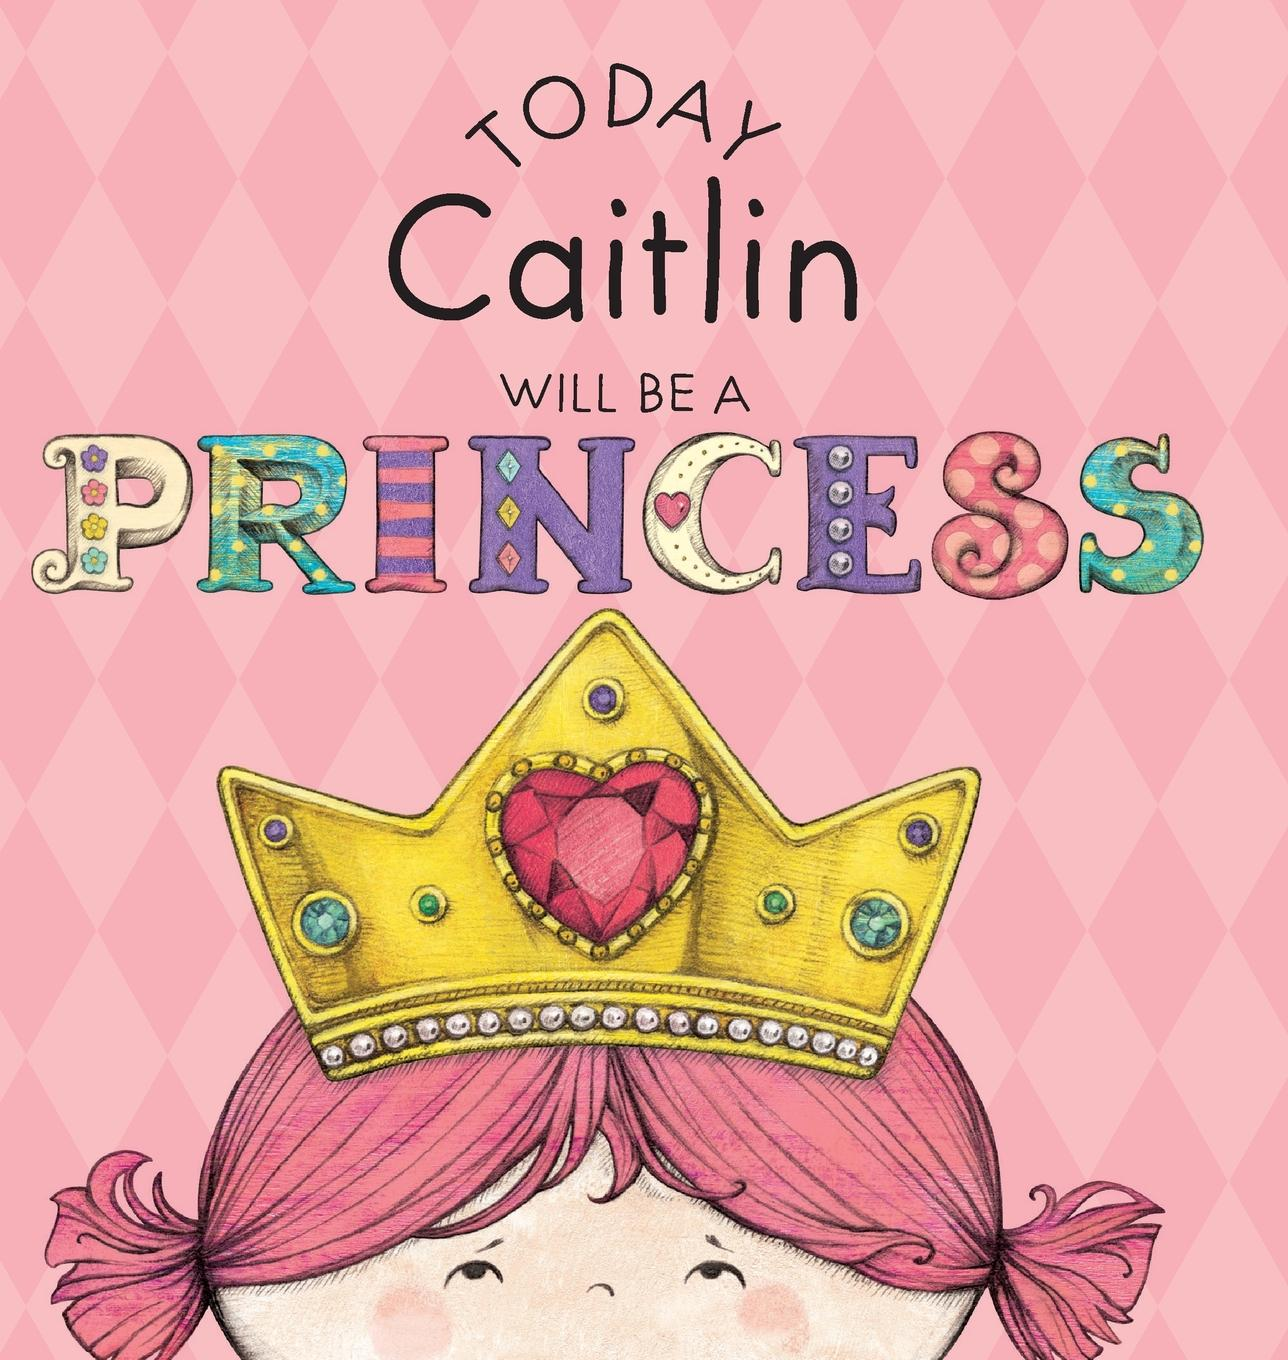 Today Caitlin Will Be a Princess